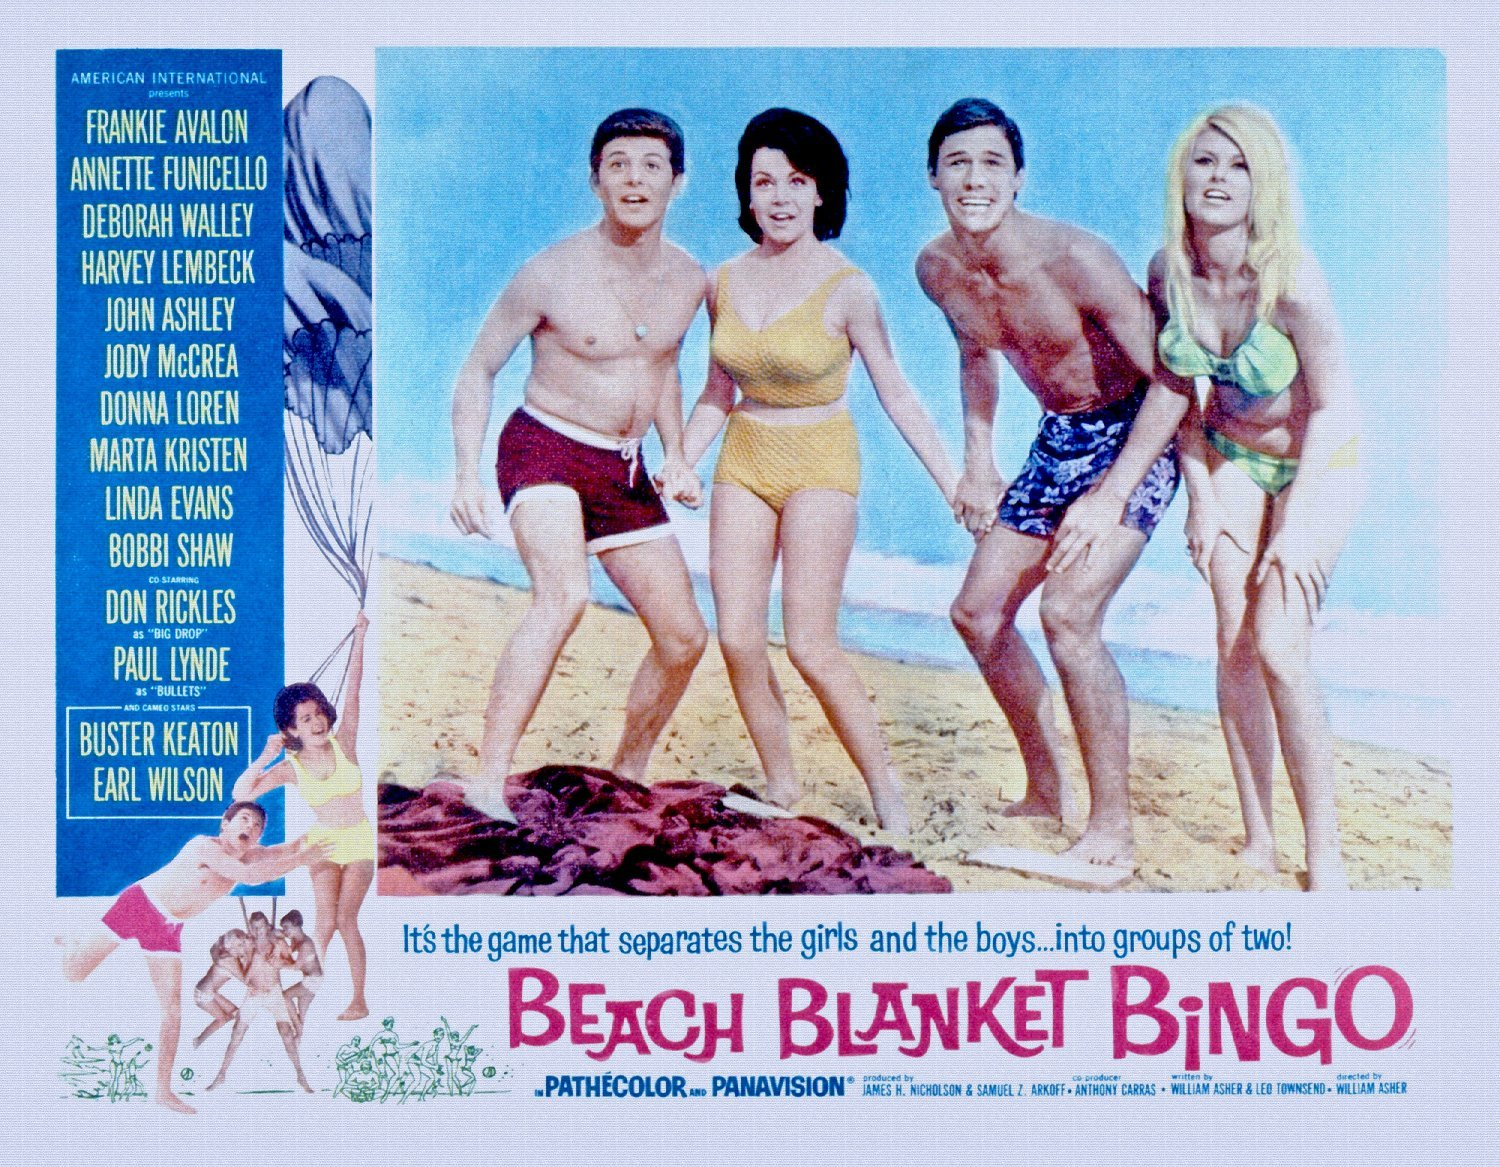 Odsan Gallery Beach Blanket Bingo, Frankie Avalon, Annette Funicello, Mike Nader, 1965 - Premium Movie Poster Reprint 36'' by 28'' Unframed by Odsan Gallery